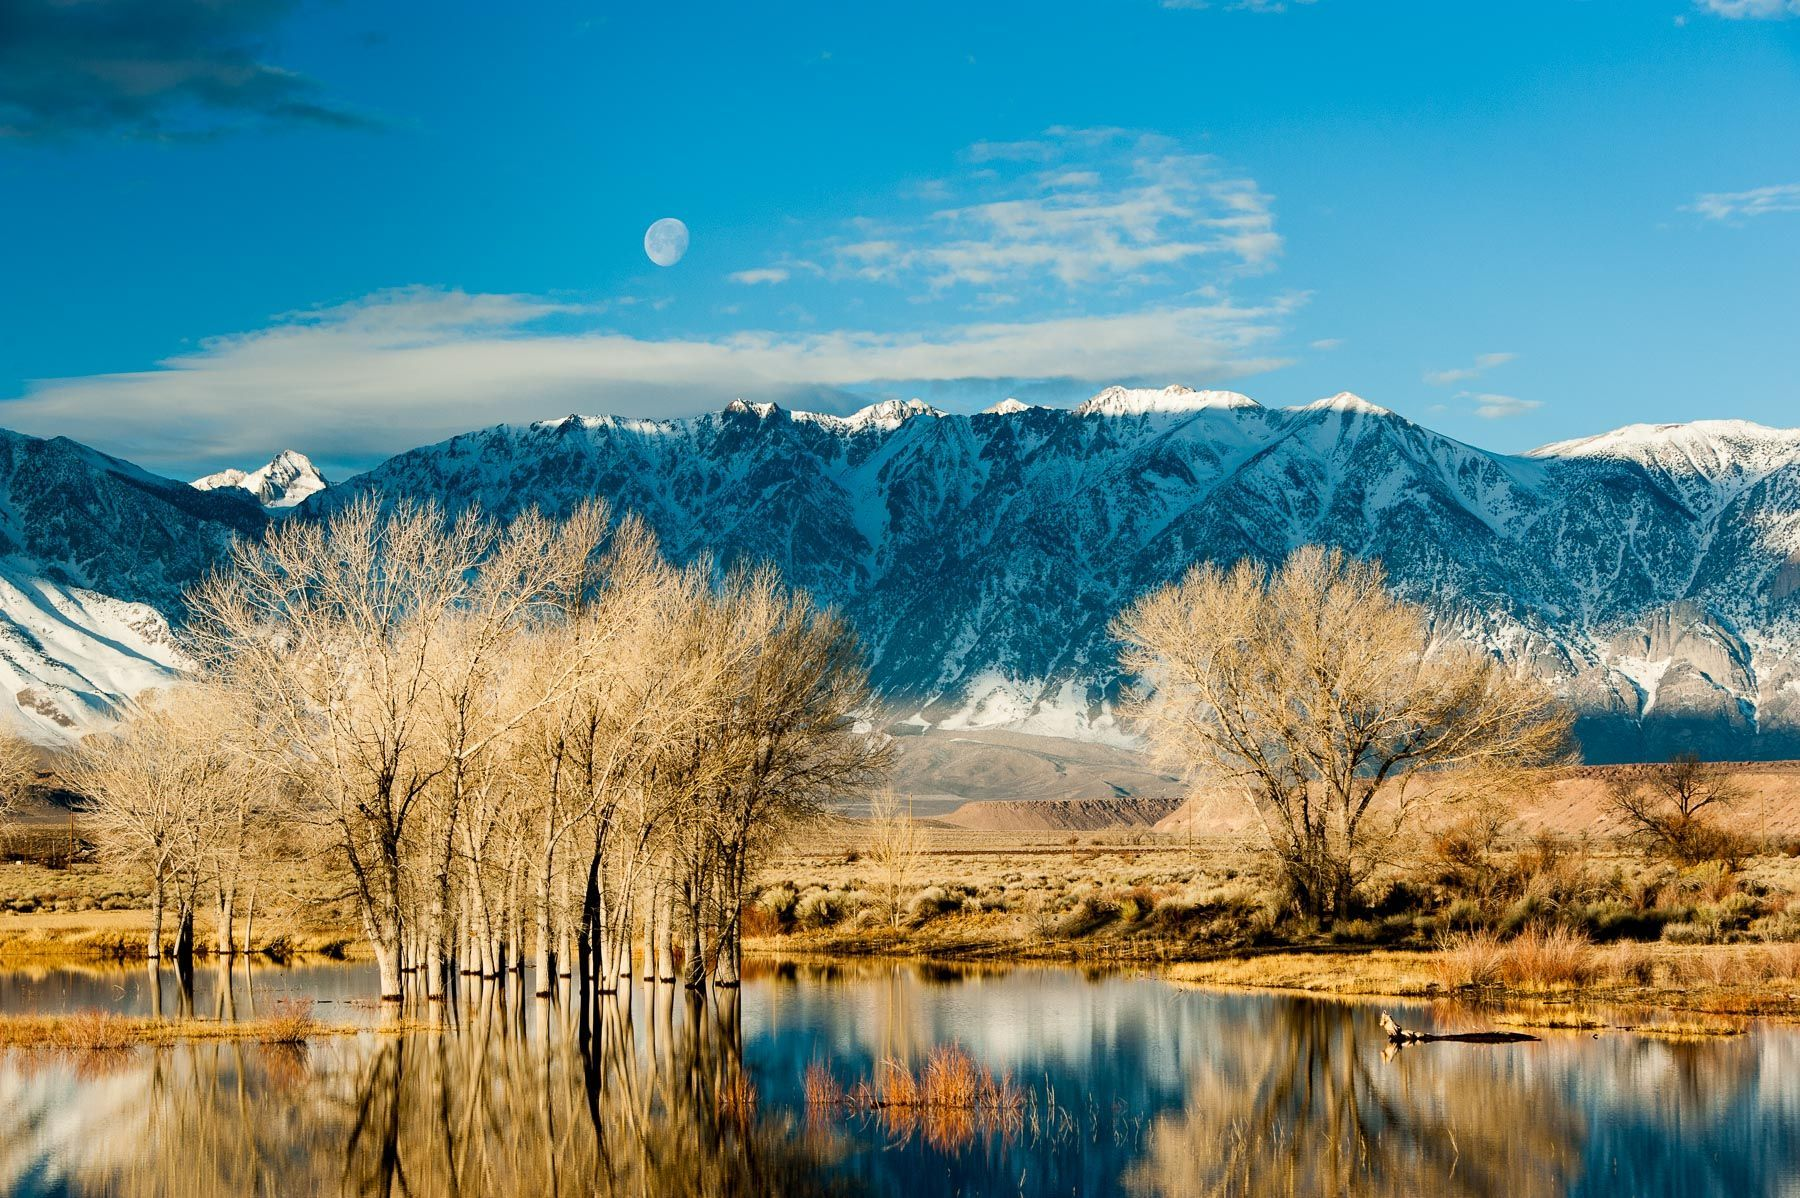 Early Morning Winter Light and Setting Moon over an Eastern Sierra Pond